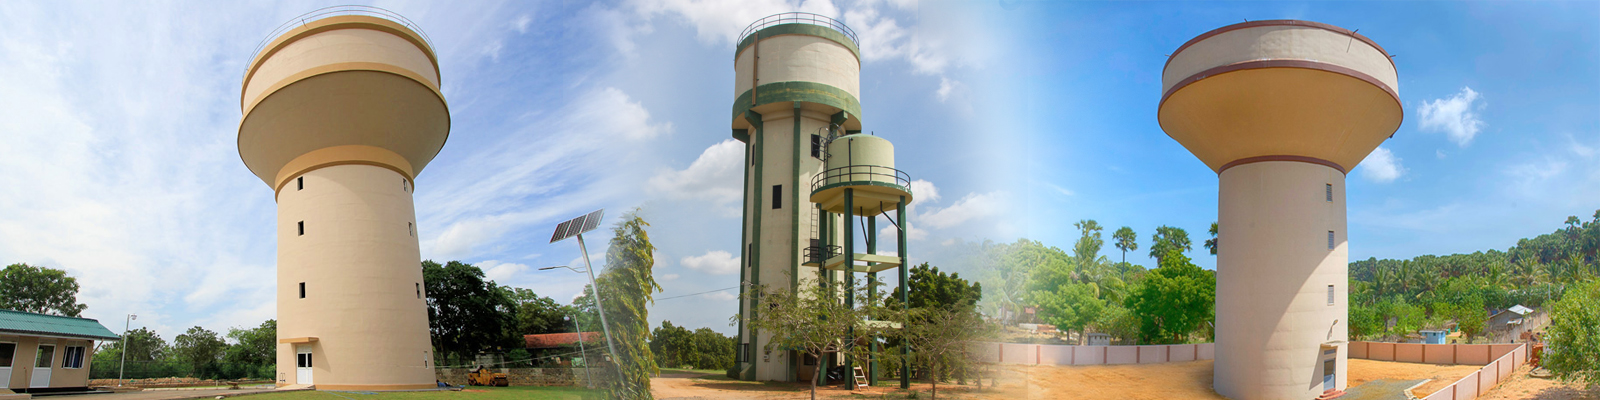 Water Tank Cleaning Service in harayana  @MaxCleaner